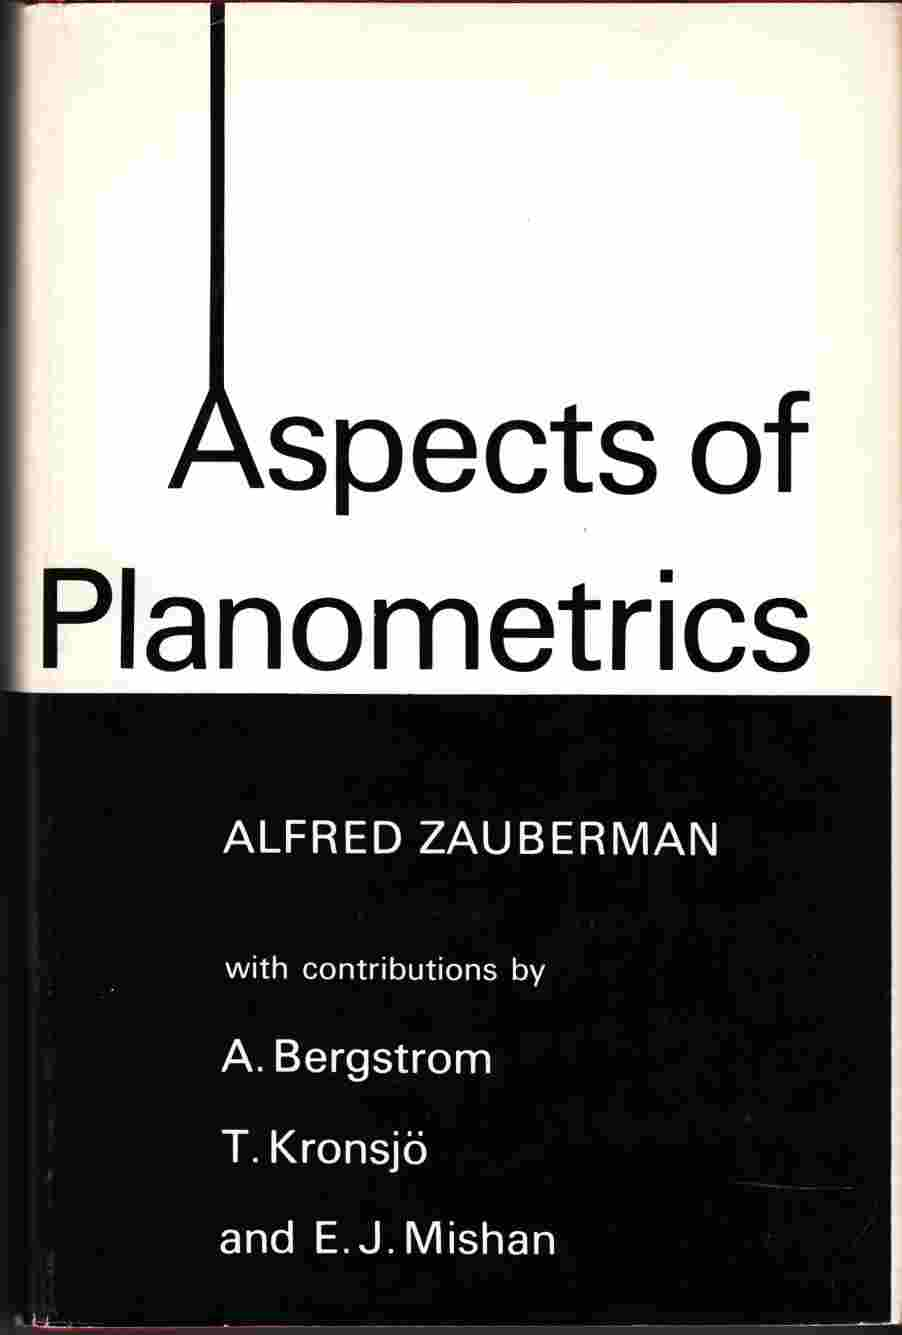 Image for Aspects of Planometrics